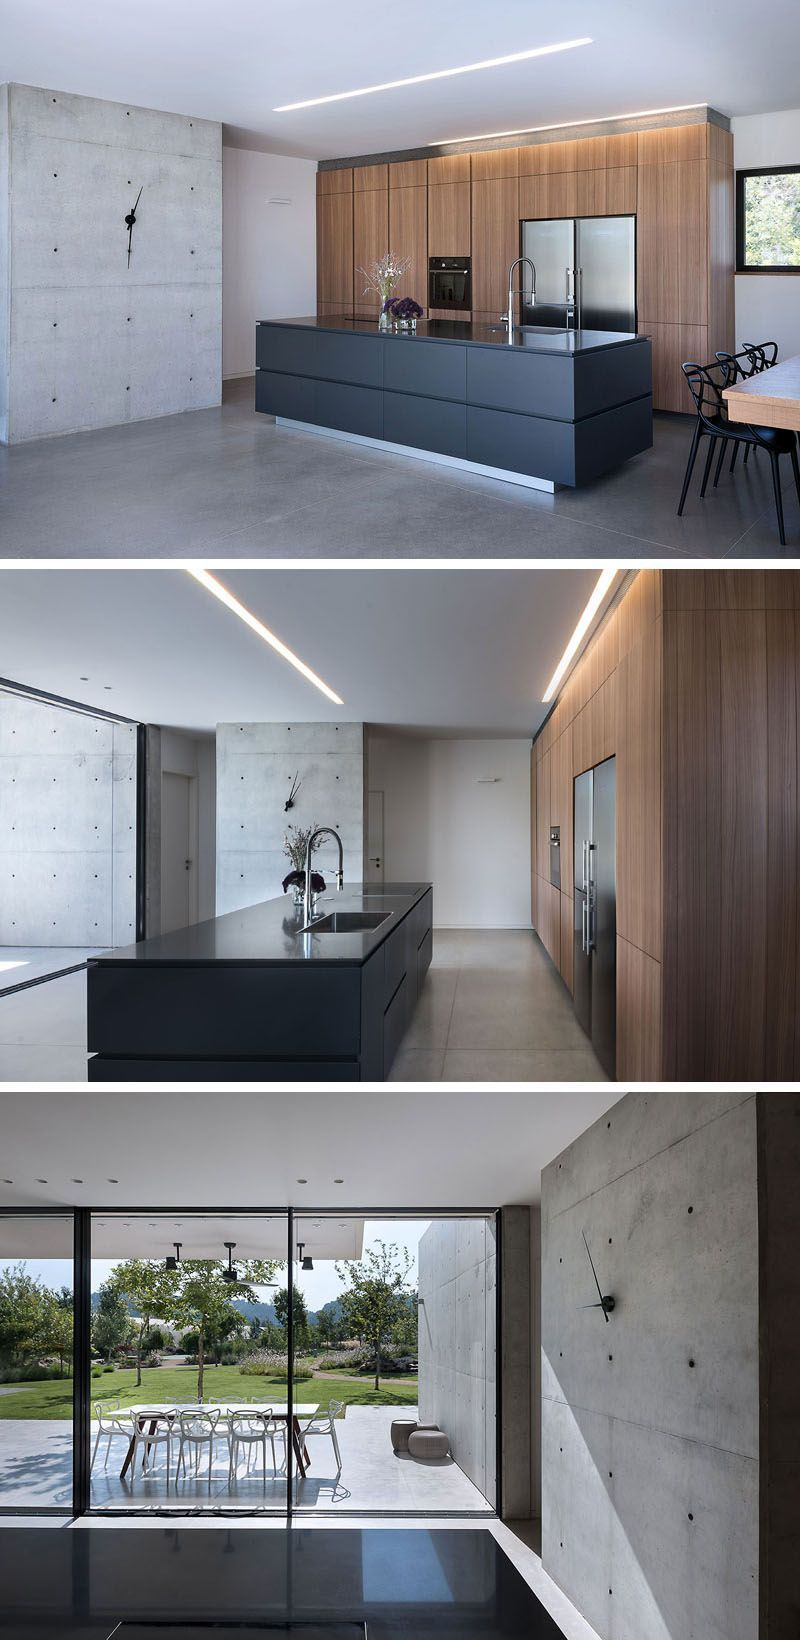 In this modern kitchen, minimalist wood cabinets line the wall ...